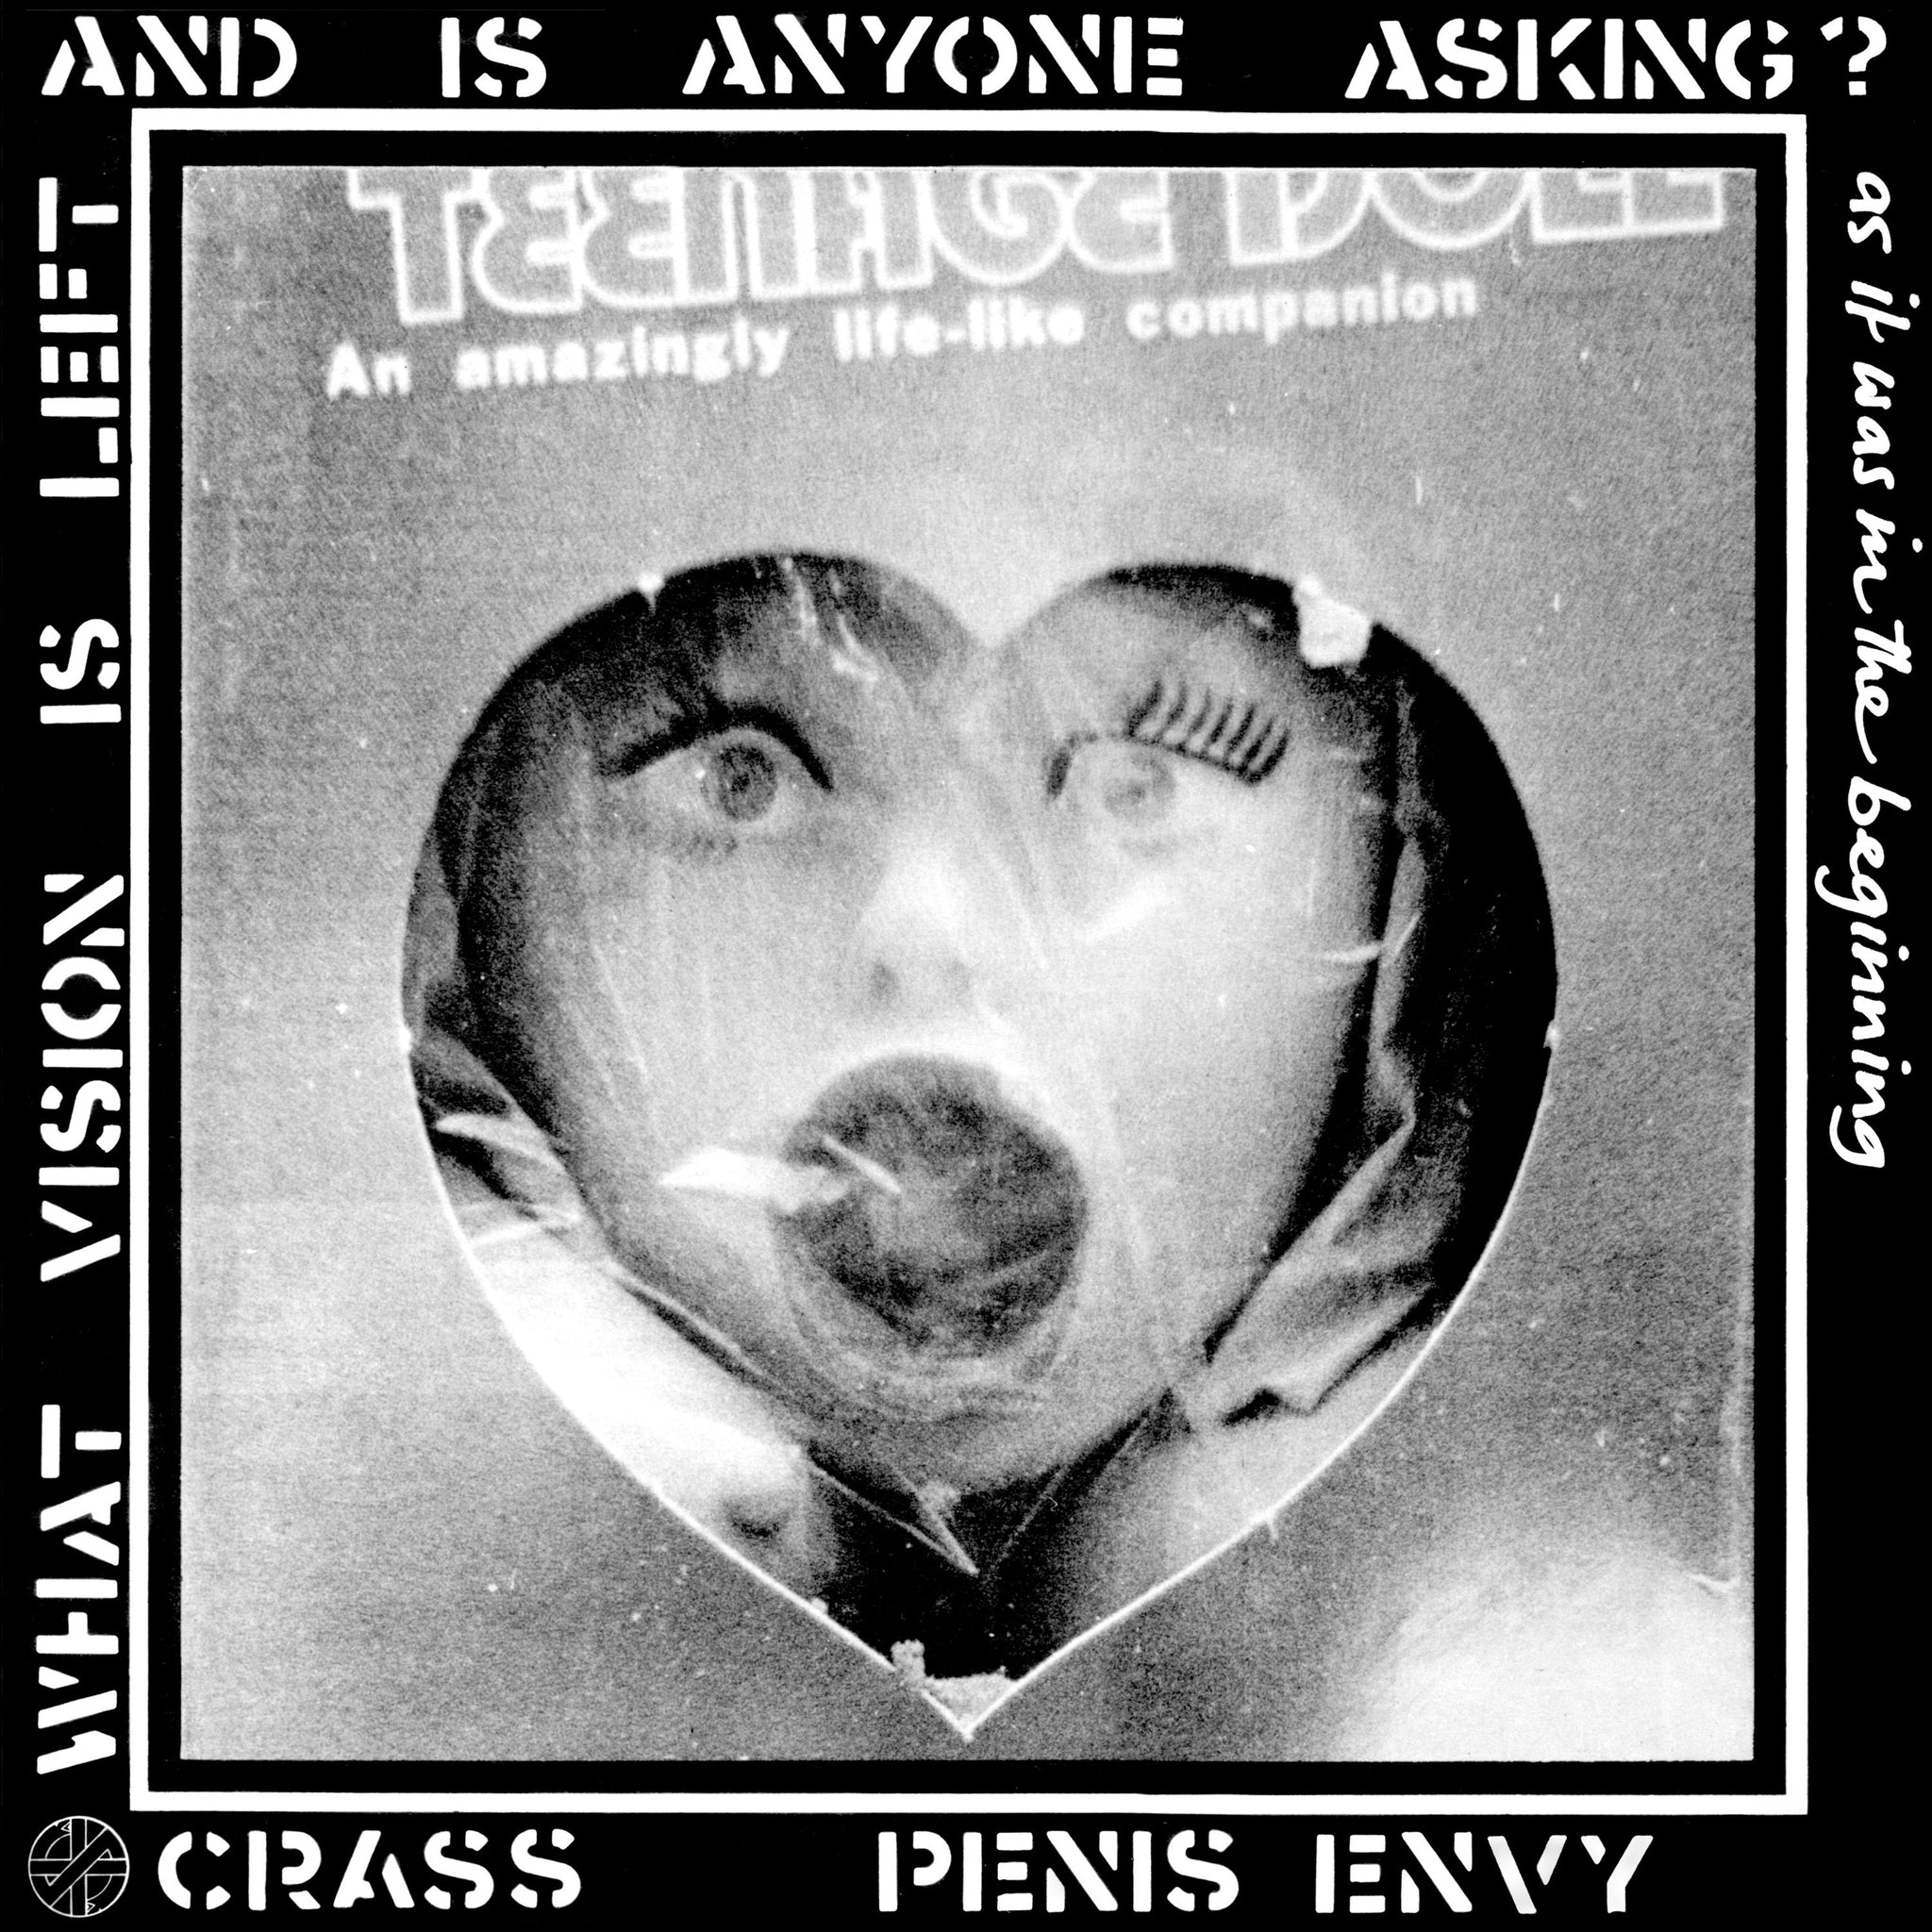 Crass - Penis Envy LP - Vinyl